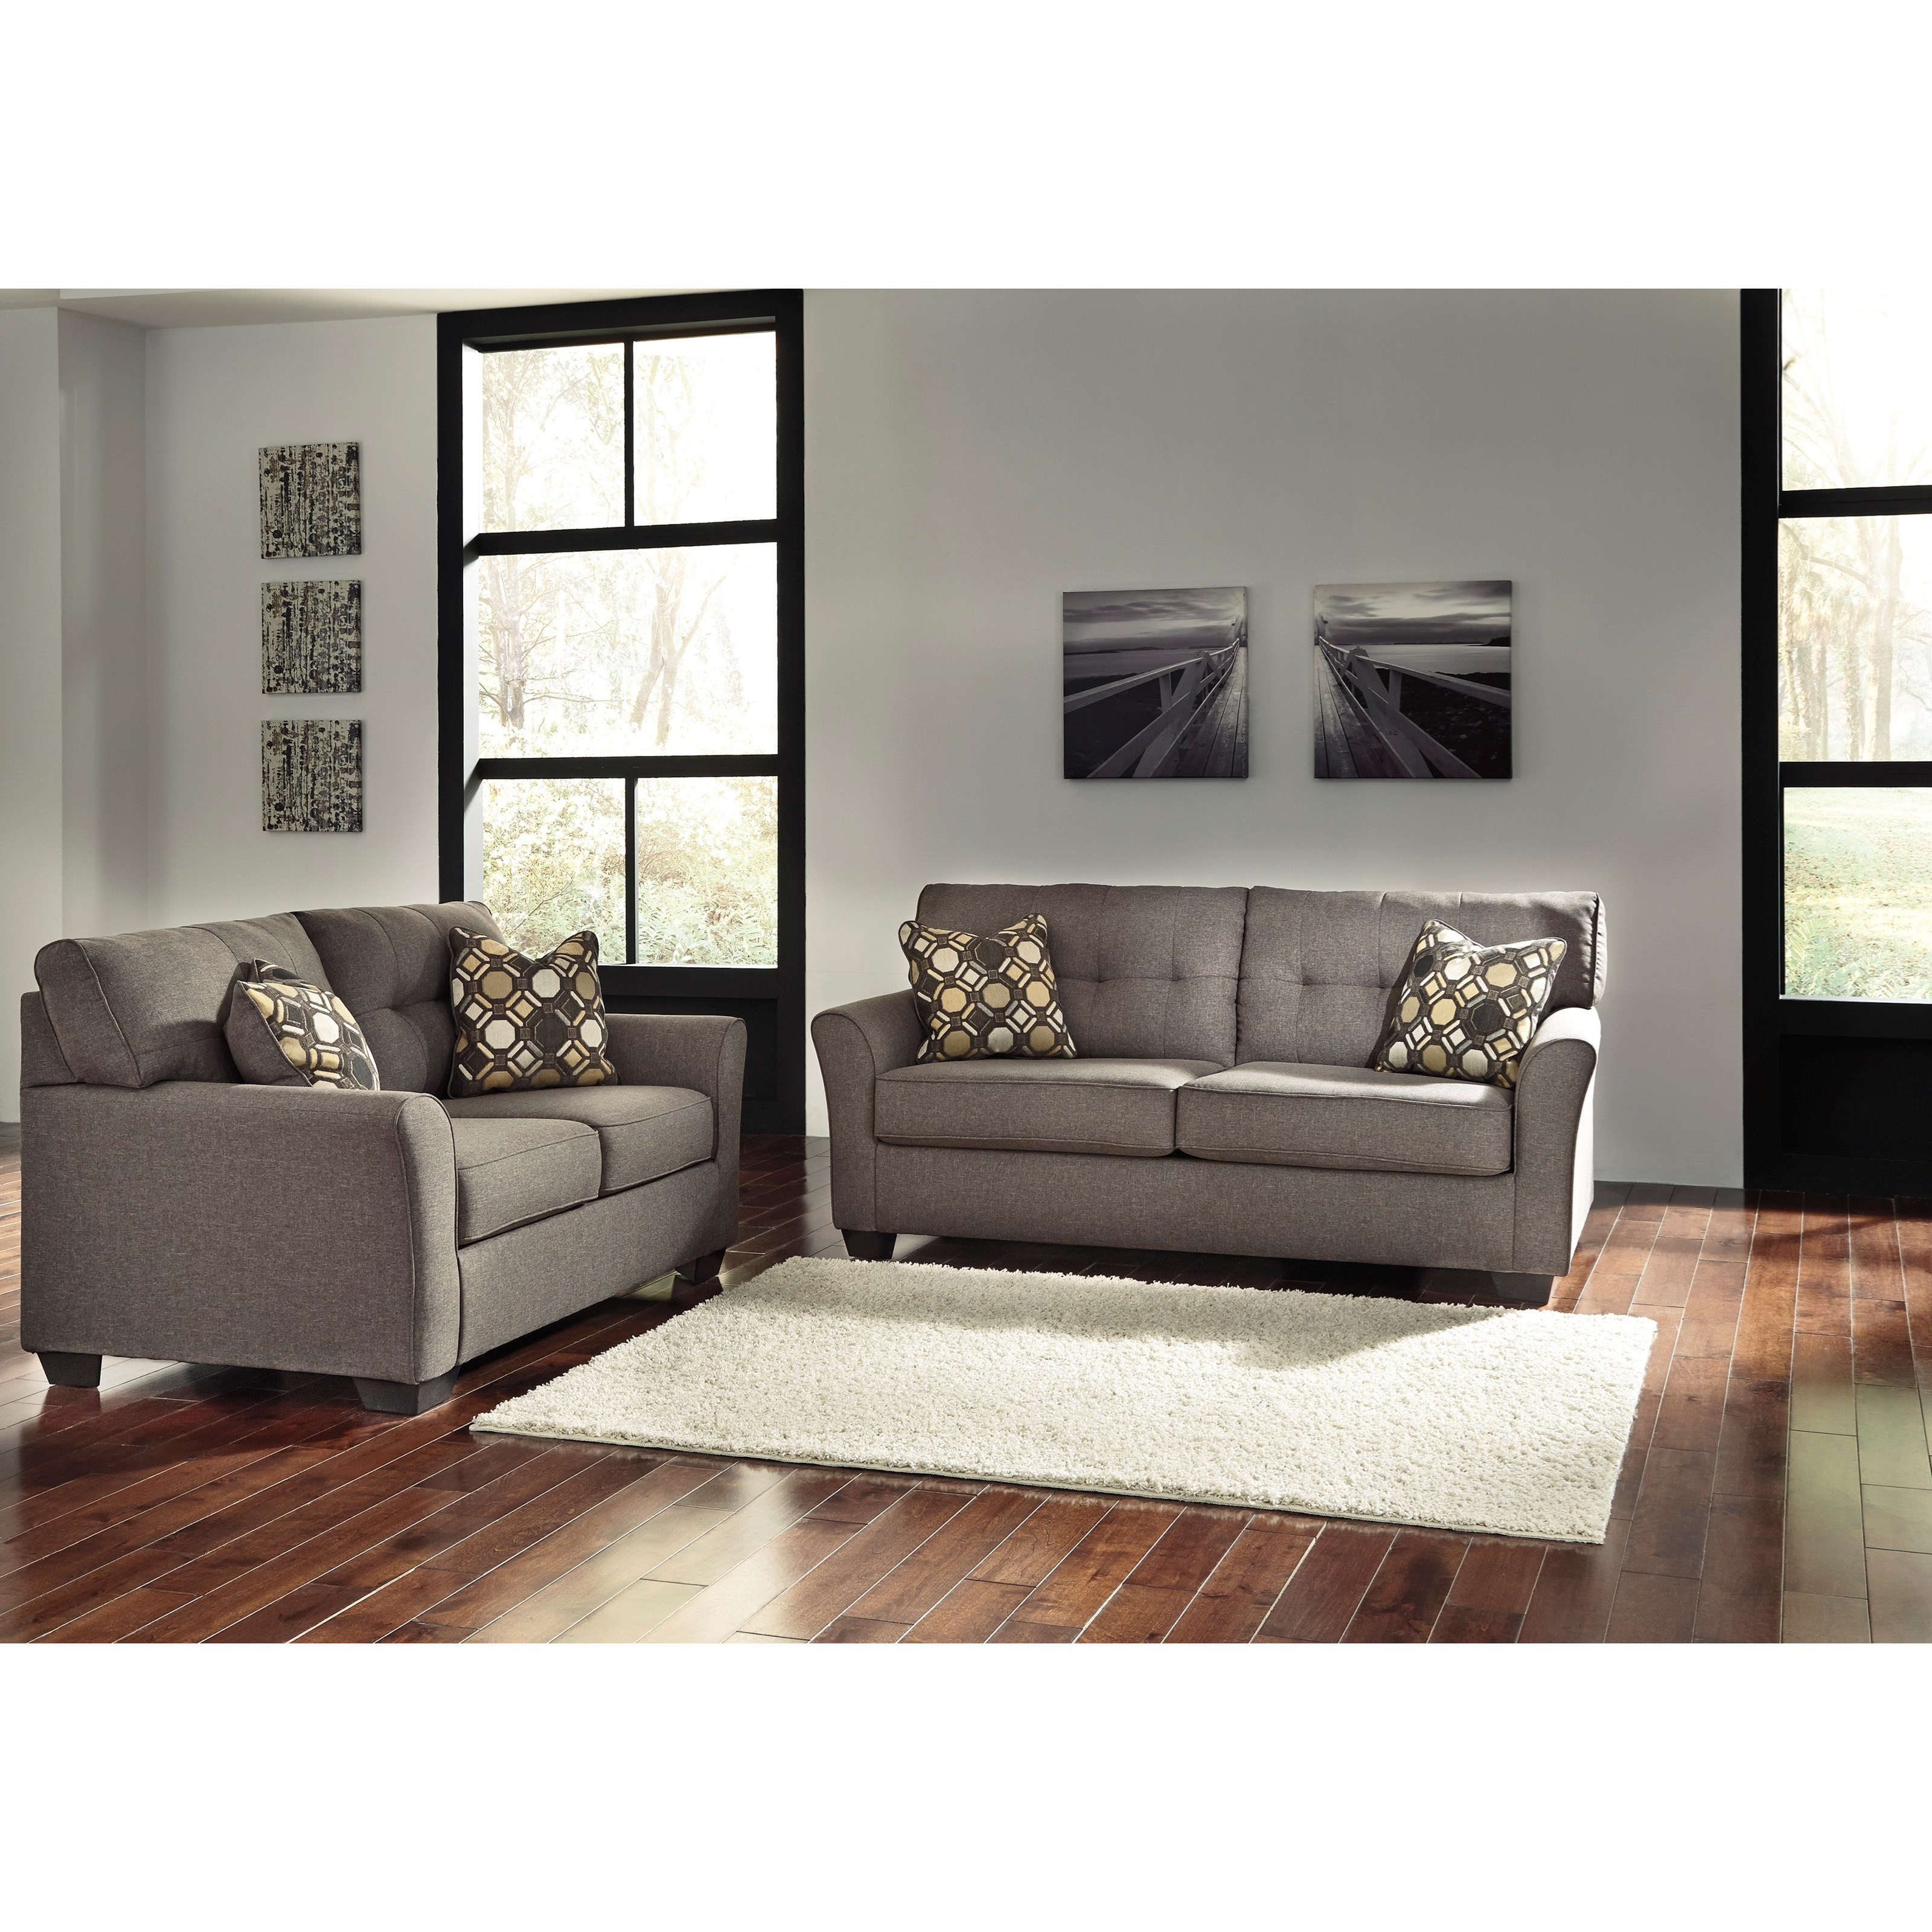 Signature Design by Ashley Tibbee Stationary Living Room Group - Item Number: 99101 Living Room Group 1